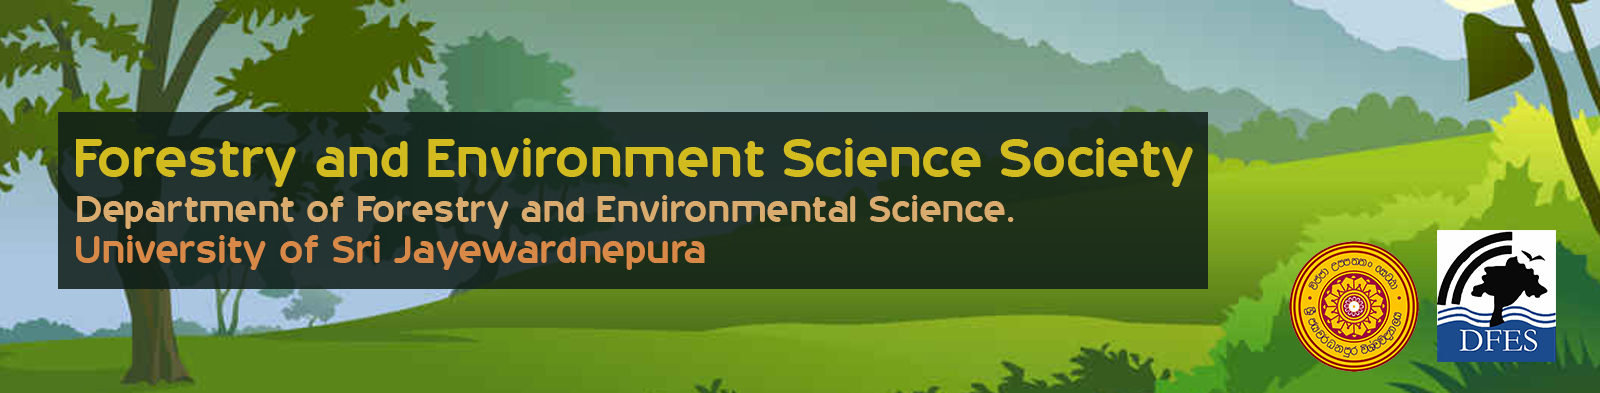 Forestry and Environment Science Society